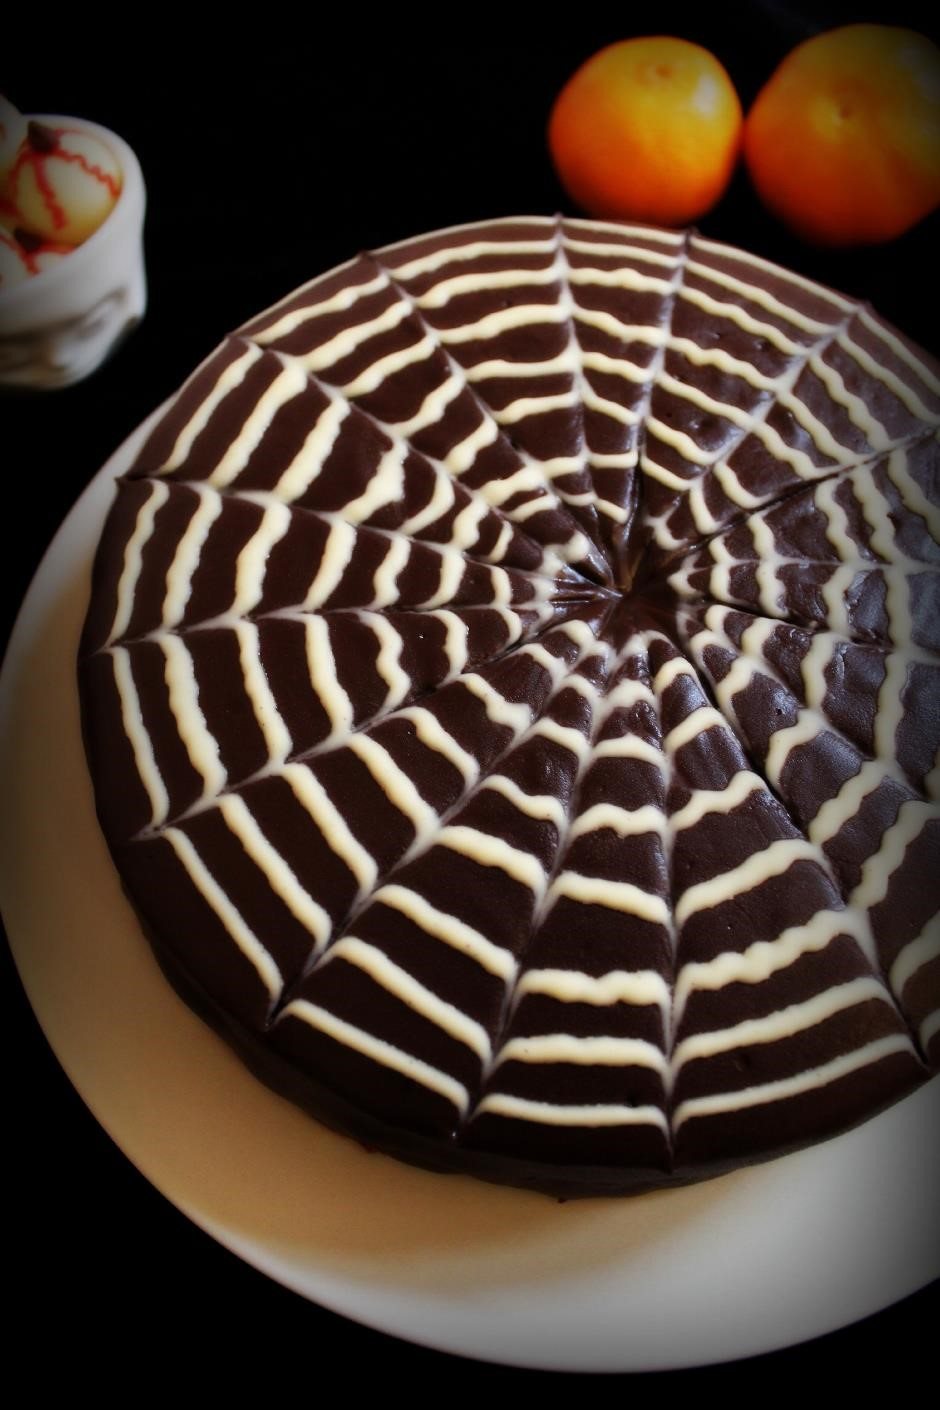 How To Make A Spiderweb Design On A Cake